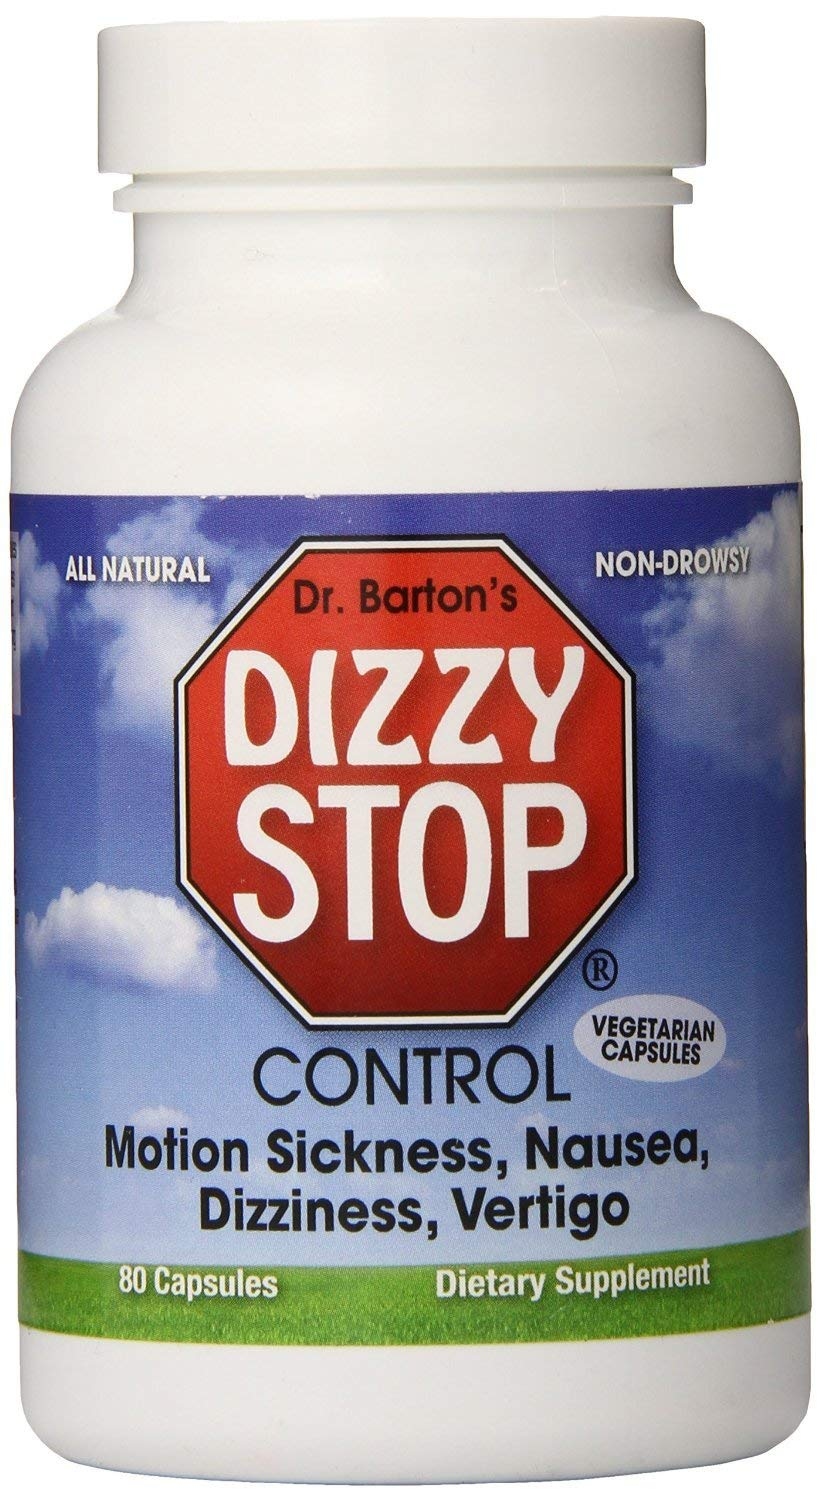 Motion Sickness, Dizziness, Vertigo, Nausea - All Natural Herbal Supplement Treatment - by Dizzy Stop by Dizzy Stop